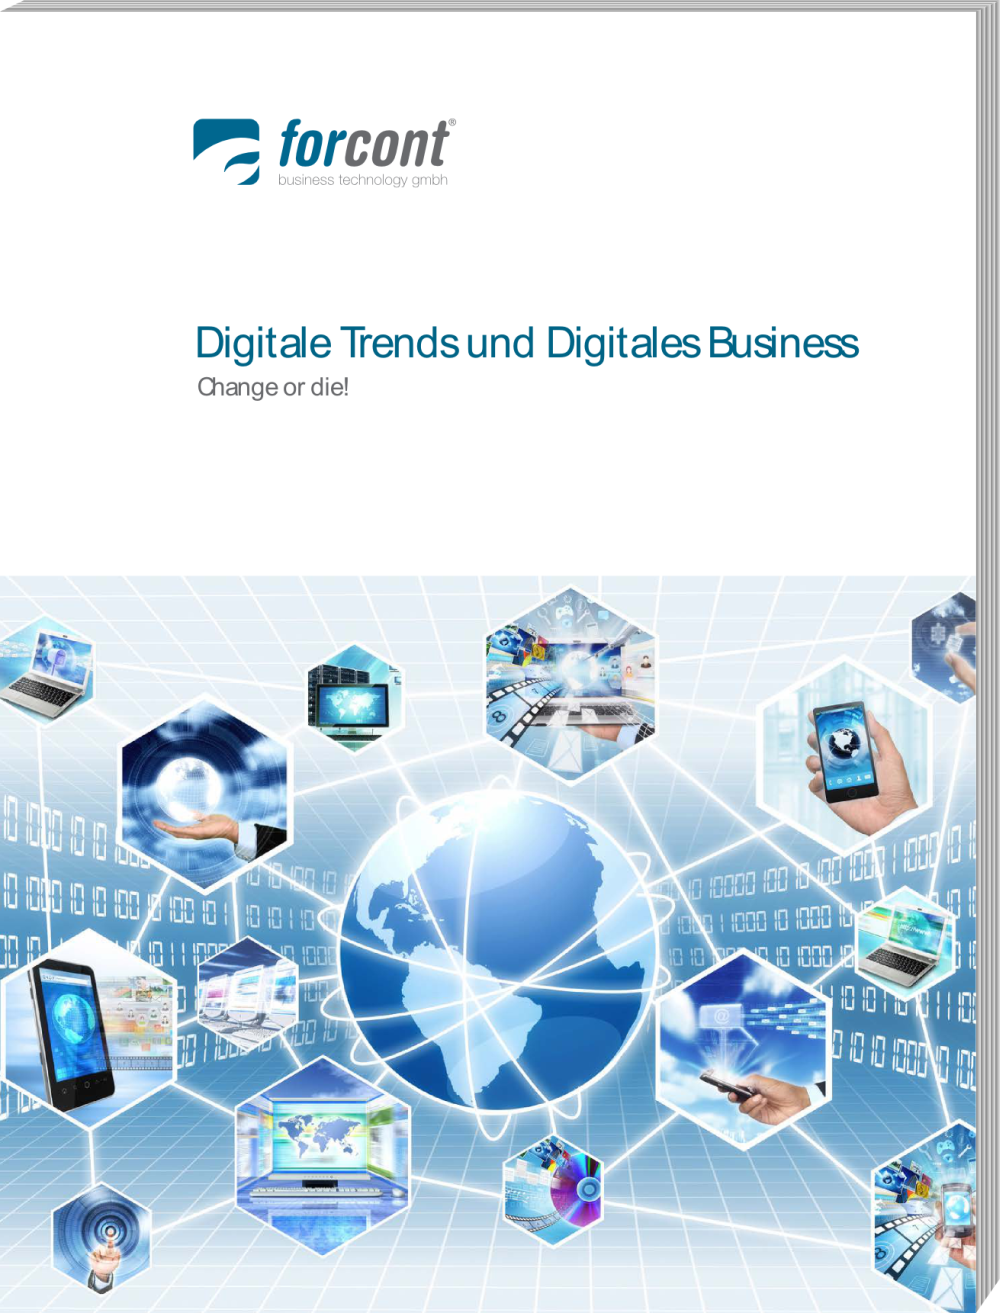 Digitale Trends und Digitales Business – change or die